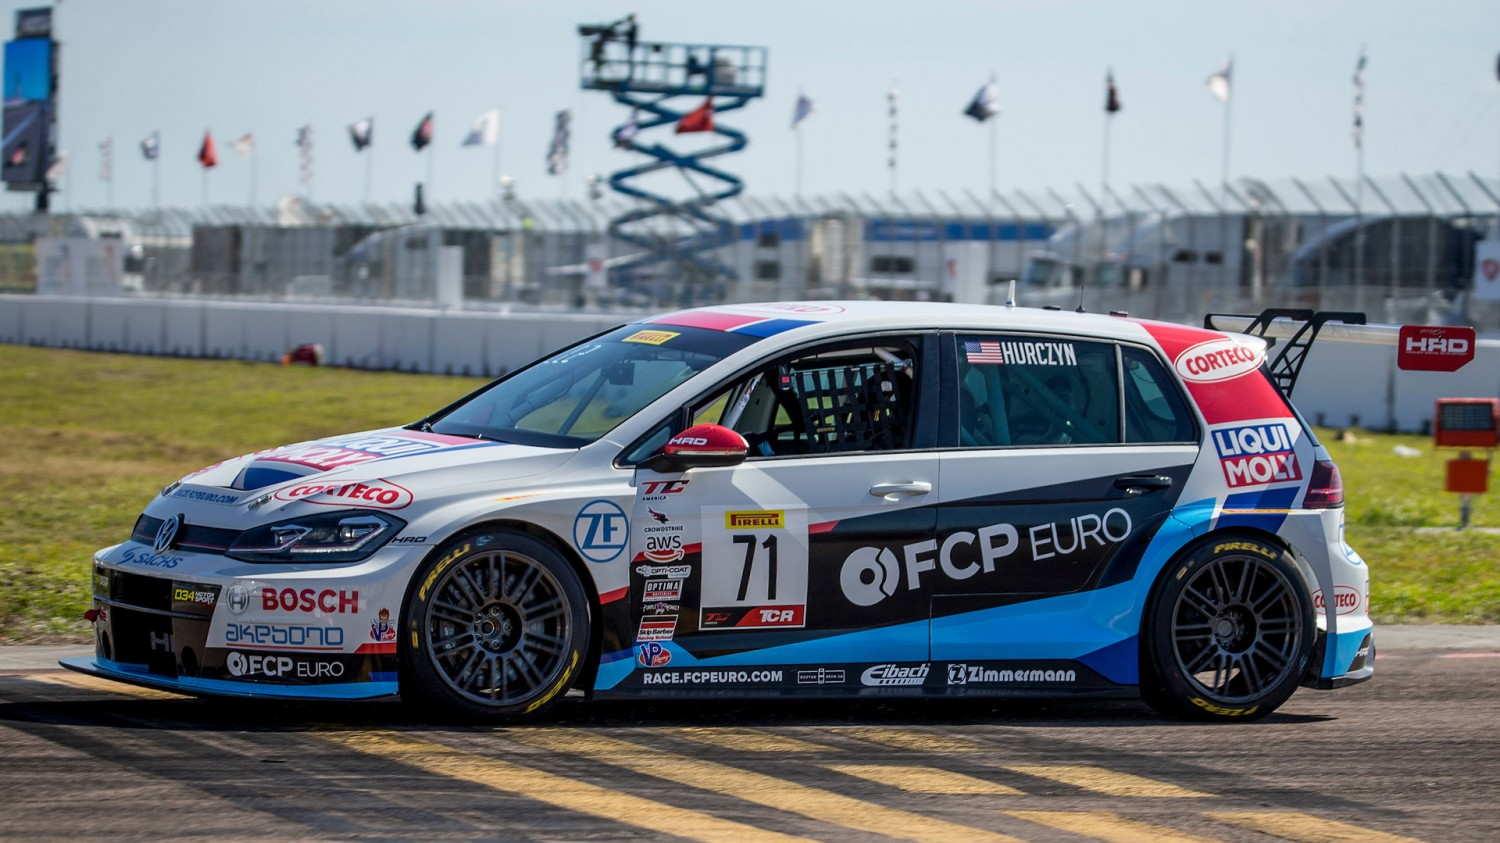 Hurczyn Takes Maiden TCR Pole as FCP Euro Locks Out St. Pete Front Row